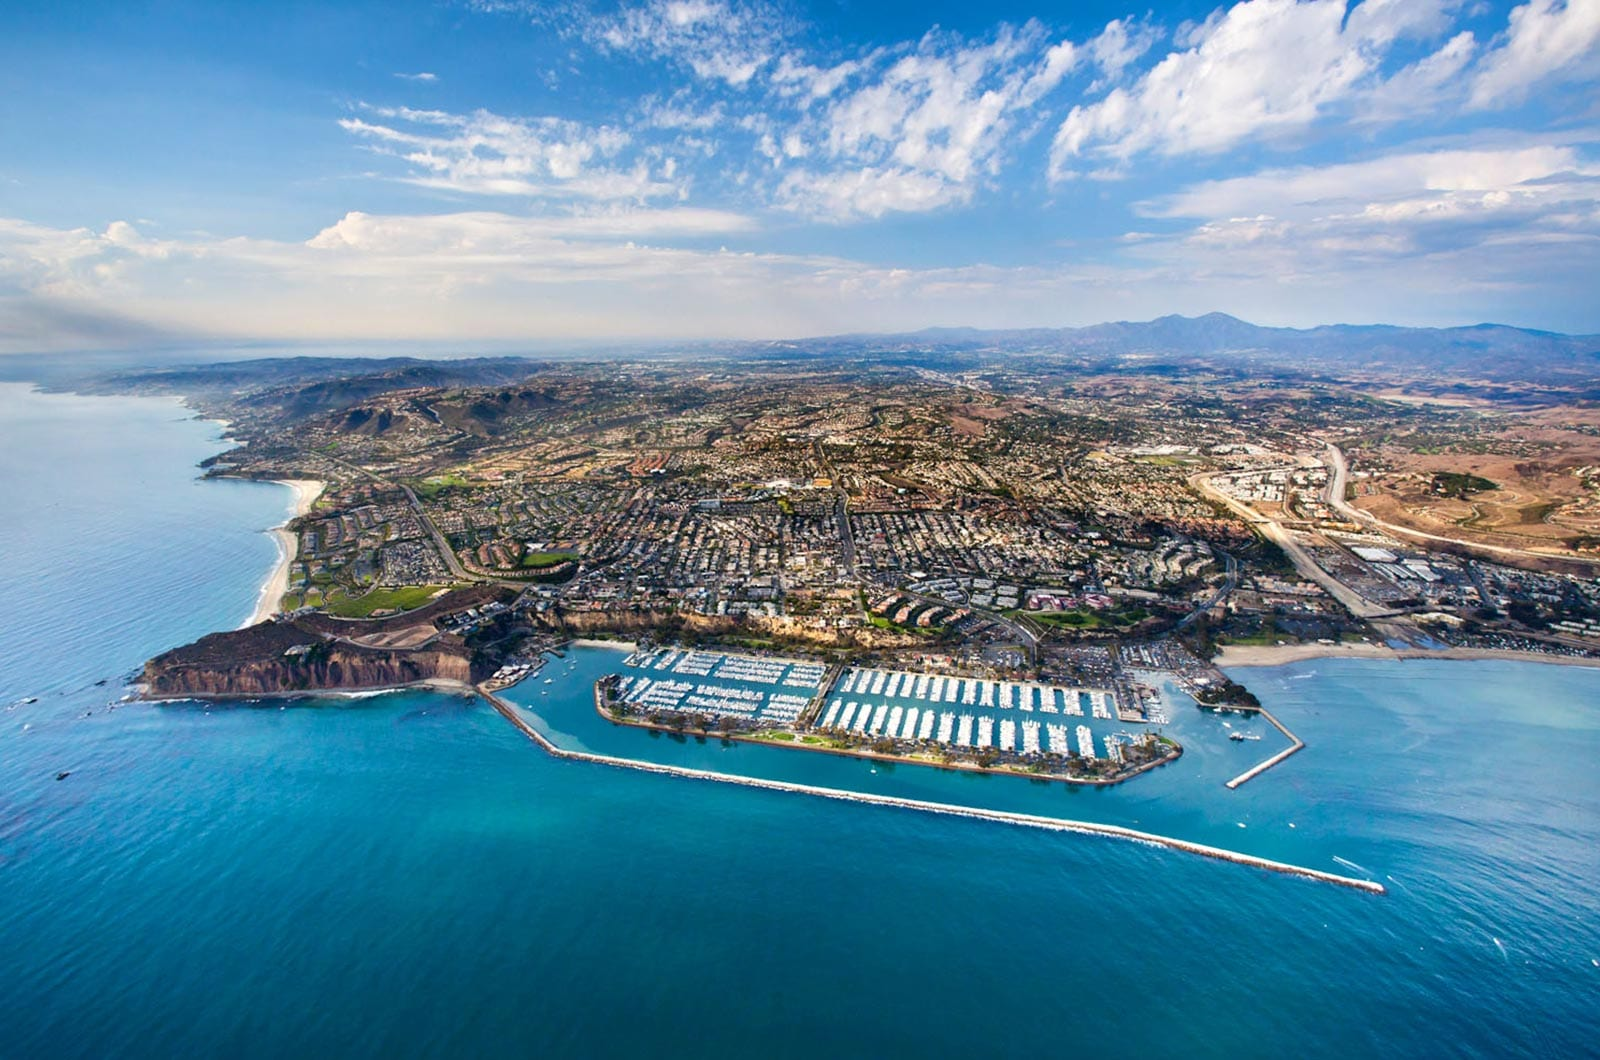 Dana Point 3D Tour Service Provider | Dana Point Aerial Photography Services | Dana Point Luxury Real Estate Photography Services | Dana Point Virtual Tour Photographer